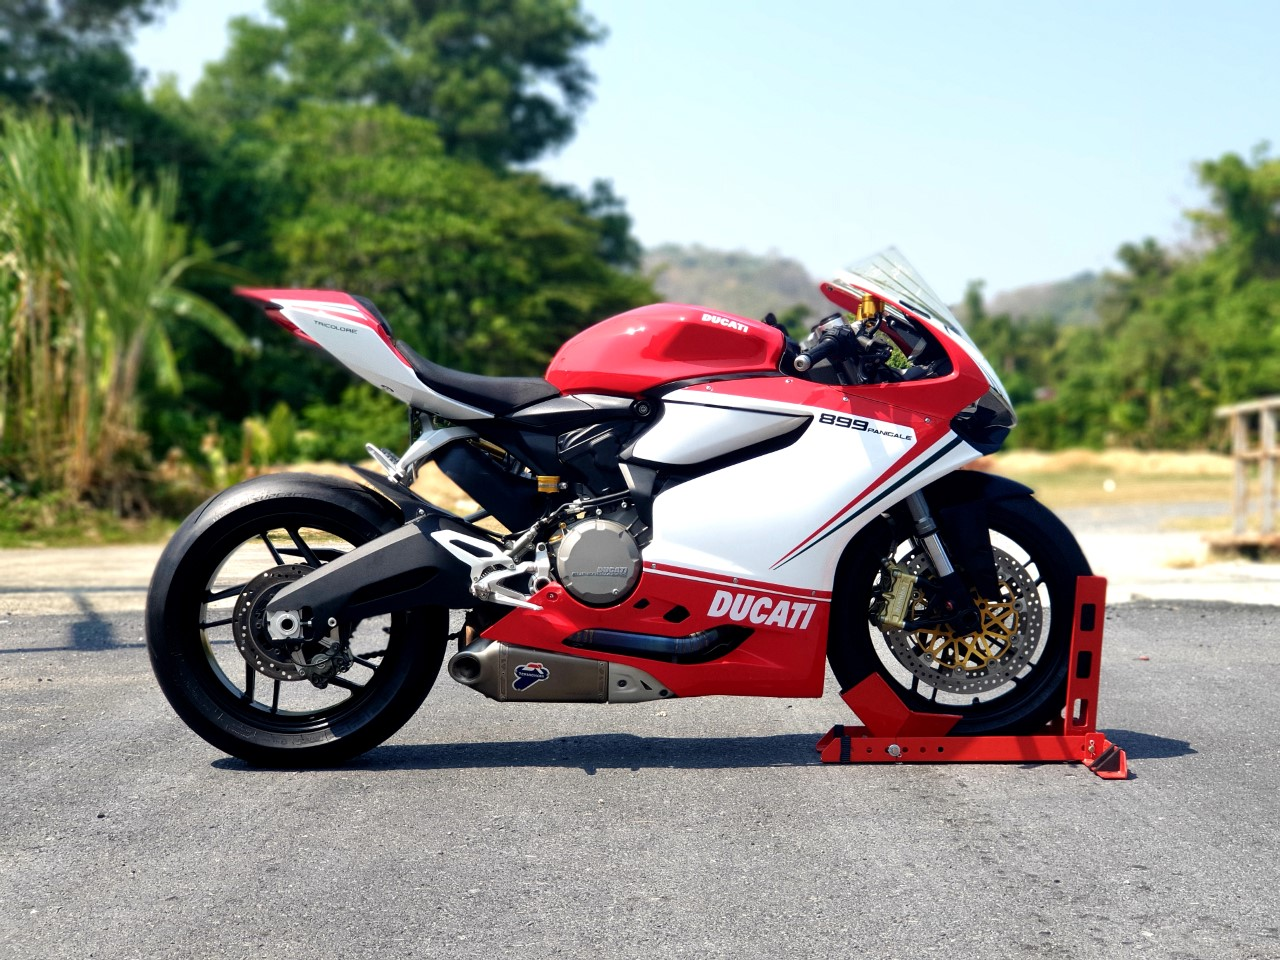 Ducati 899 Panigale มือสอง ปี 2015